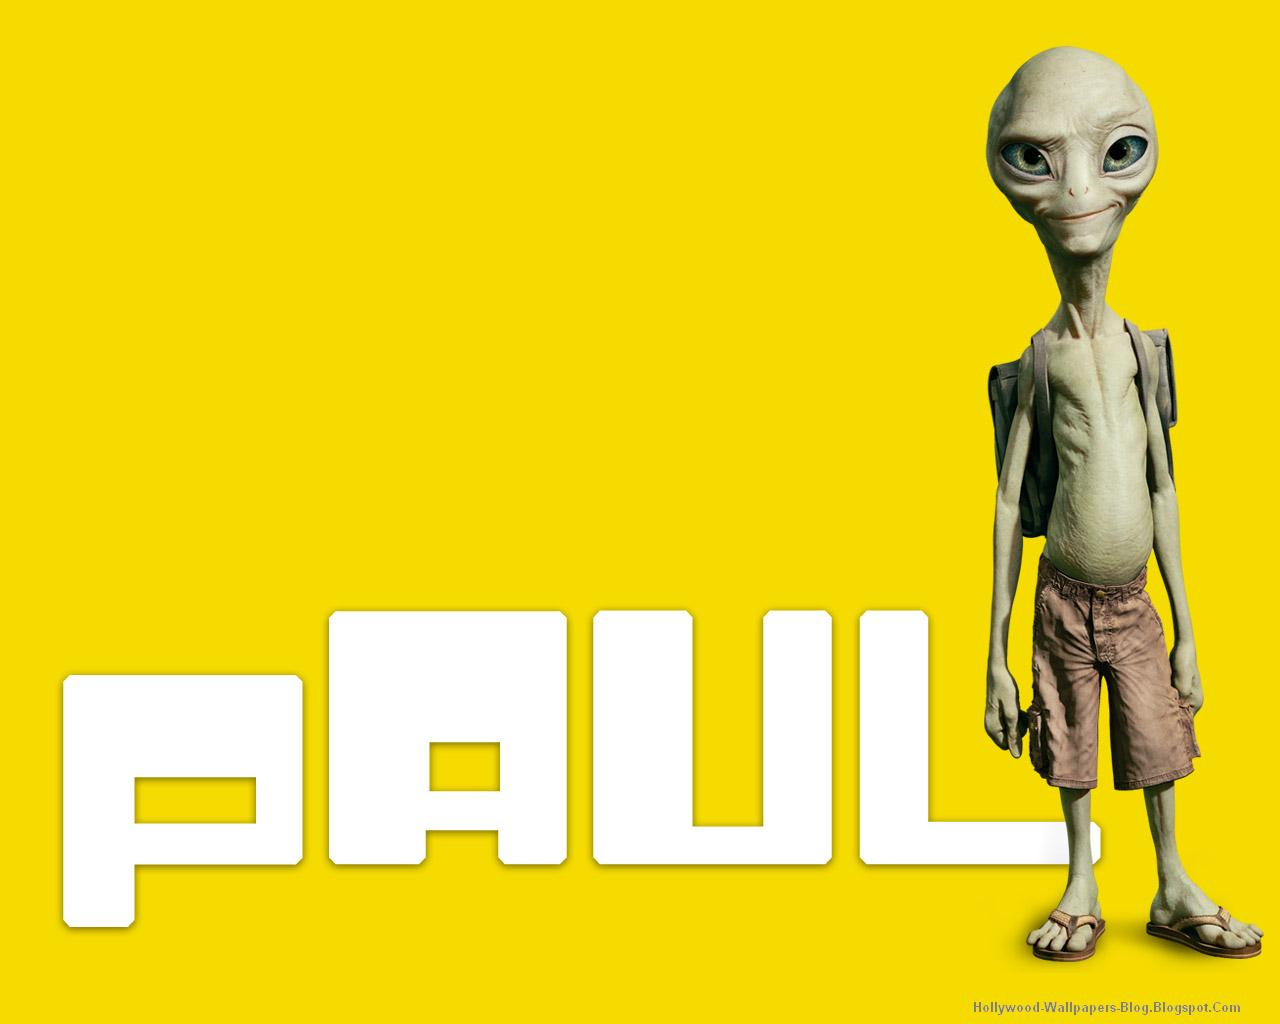 Hollywood Wallpapers Paul Movie Wallpapers 1280x1024